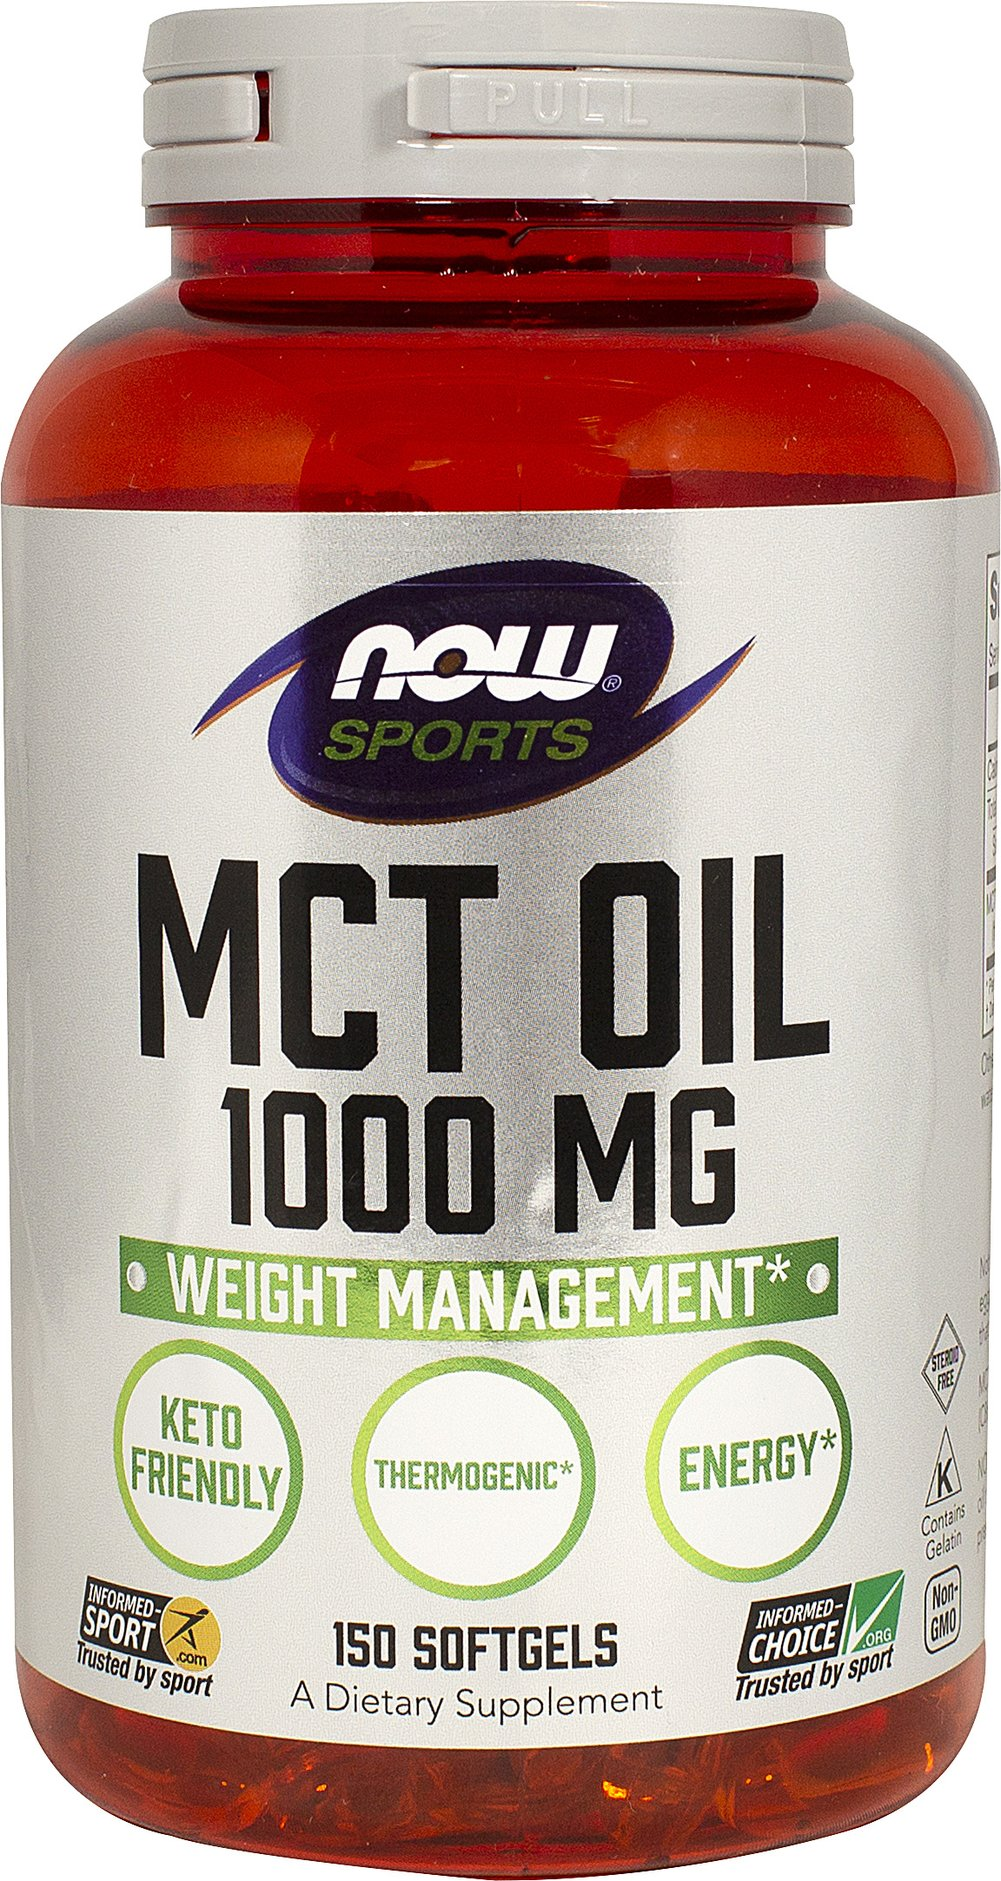 MCT Oil 1000 mg